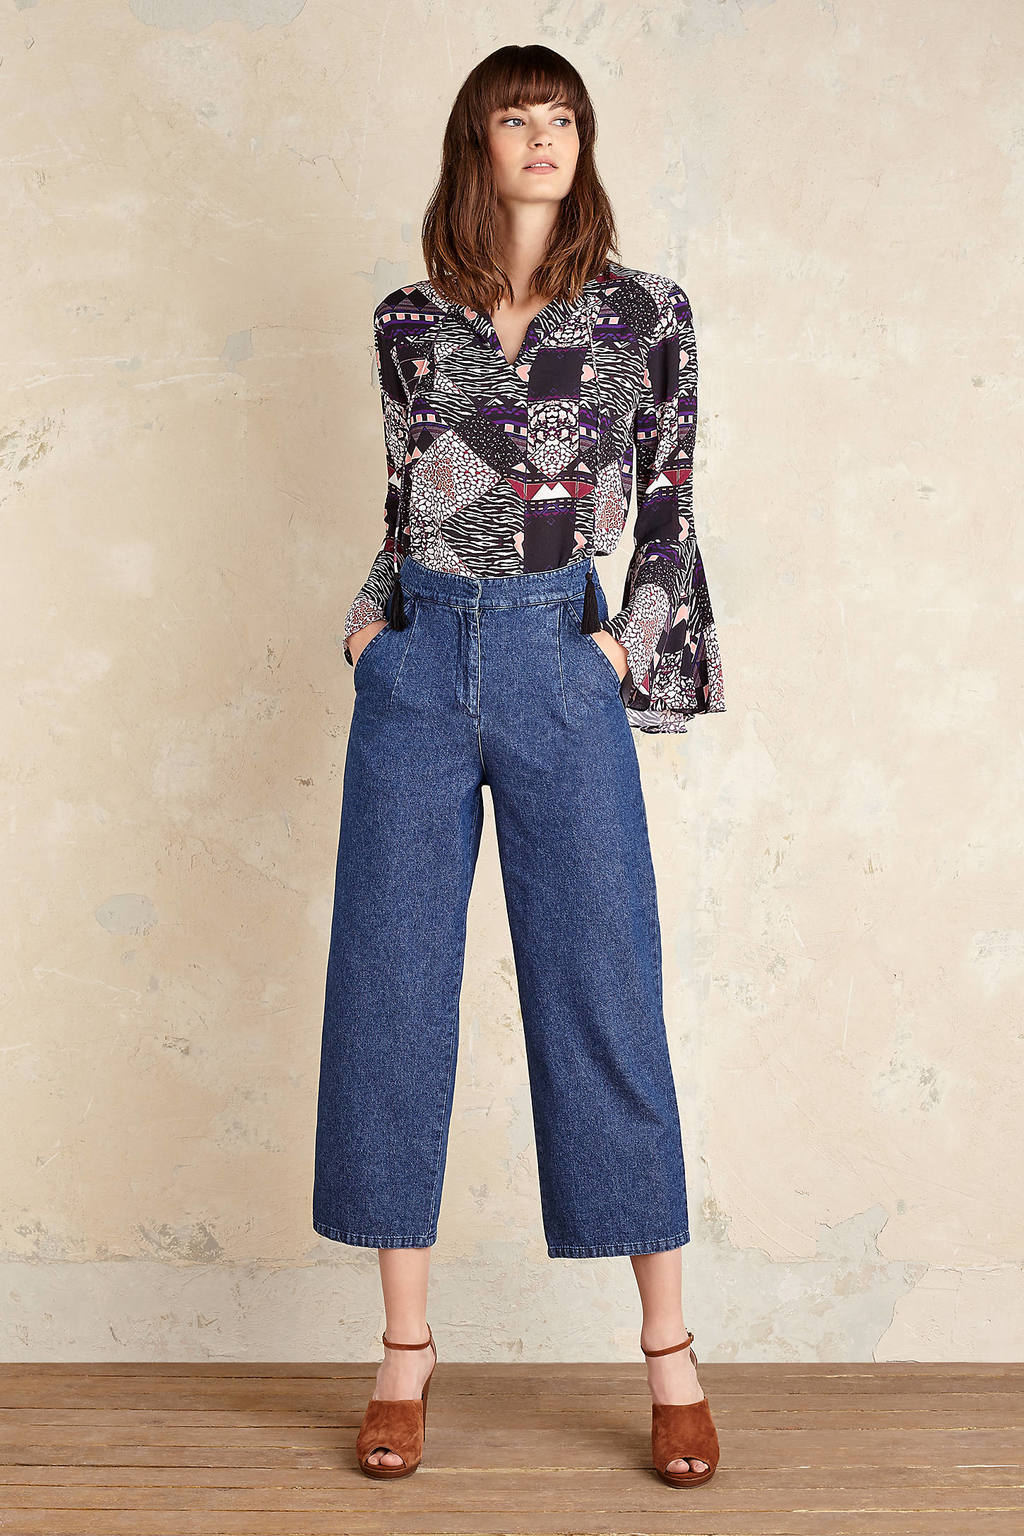 Kelsey Wide Leg Jeans - pattern: plain; waist: high rise; style: wide leg; predominant colour: denim; occasions: casual, creative work; length: calf length; fibres: cotton - stretch; texture group: denim; pattern type: fabric; wardrobe: basic; season: a/w 2016